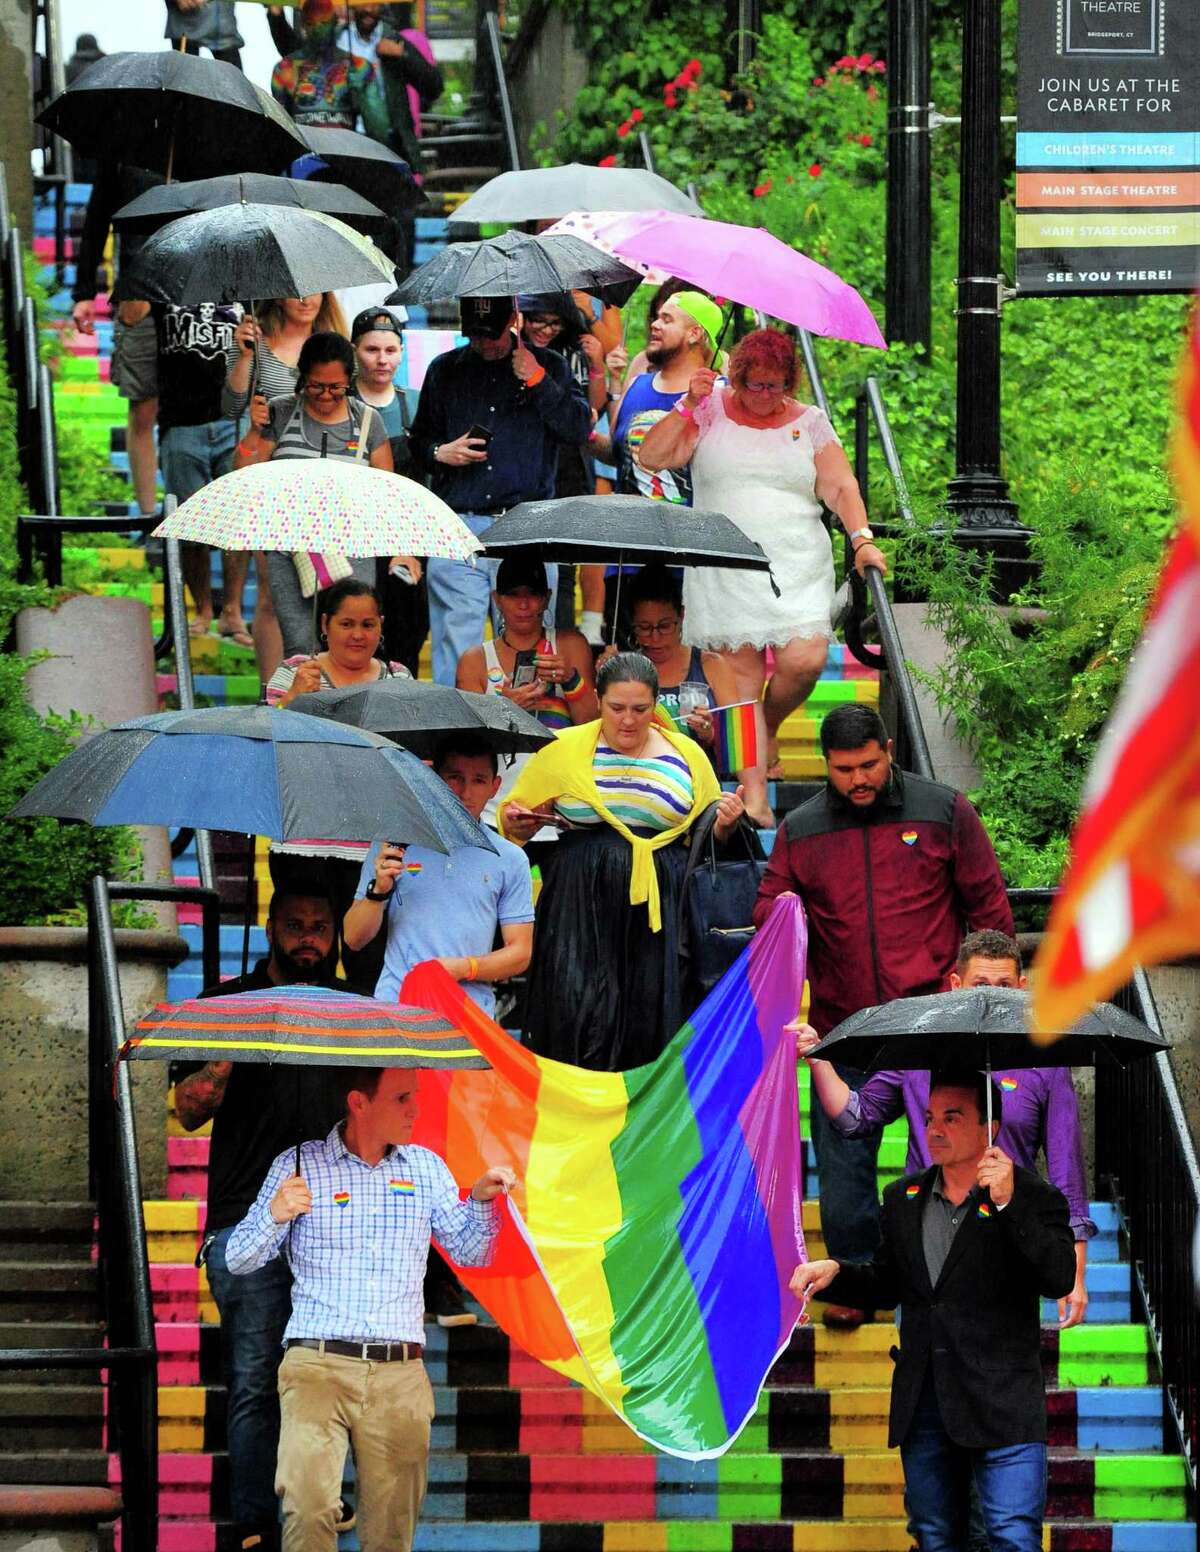 Area residents led by Mayor Joe Ganim, bottom right, take part in the parade down the stairs between Golden Hill Street and Elm Street during the 9th Annual Bridgeport Pride celebration in downtown Bridgeport, Conn., on Thursday July 18, 2019. Everyone made their way to the Bijou Theatre to enjoy the SameSex Variety Show which benefits the City Lights Gallery and WPKN radio.